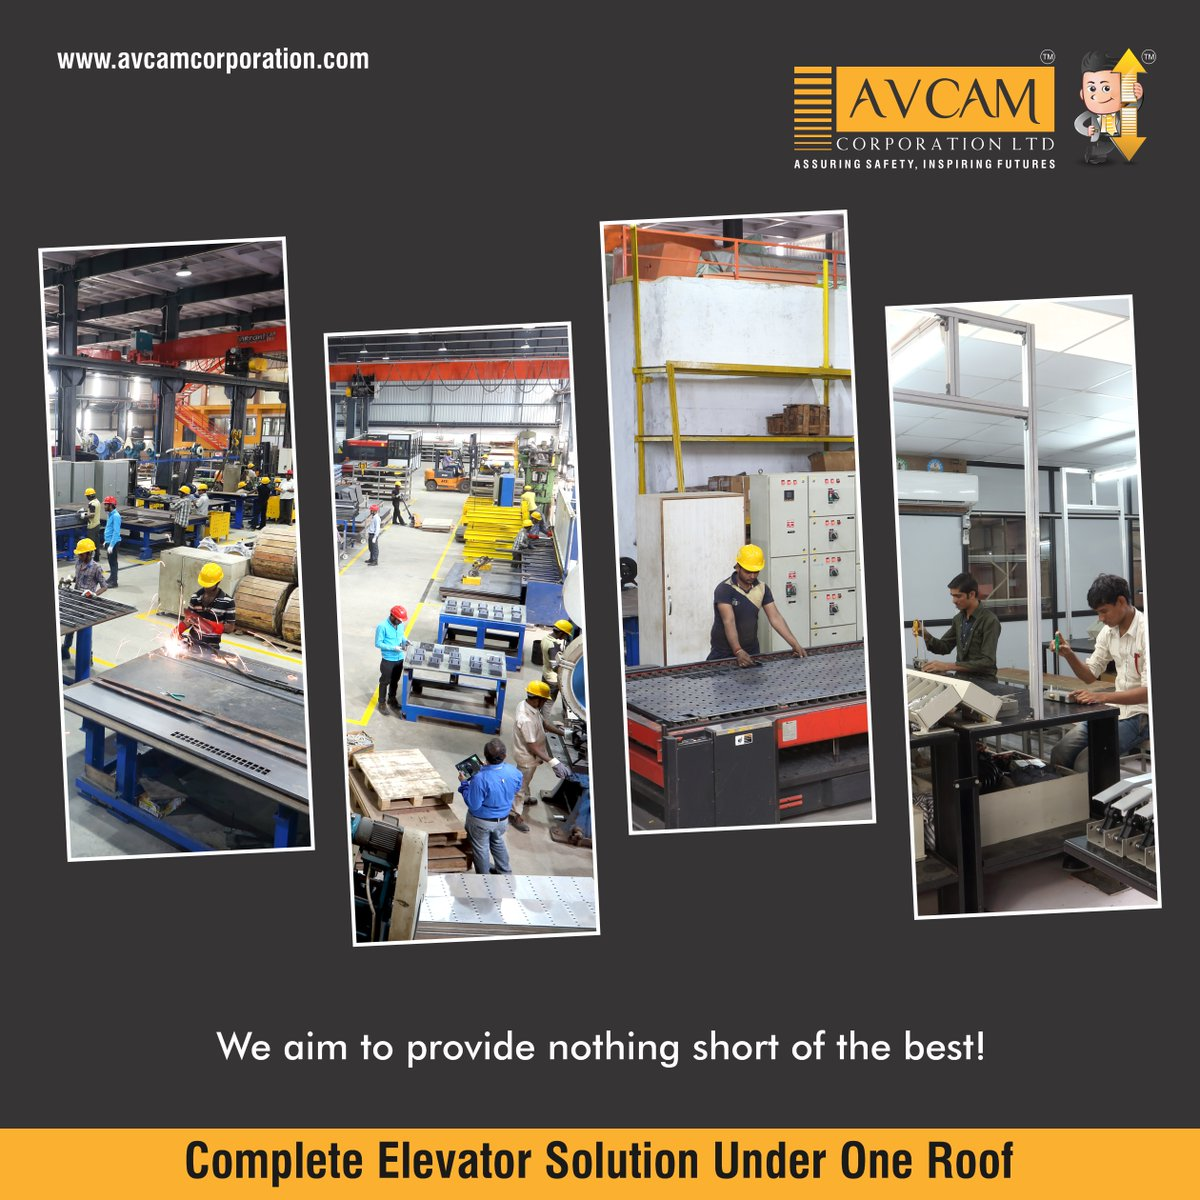 We aim to provide nothing short of the best! . . #AVCAM #StrongFuture #NextGeneration #Products #Consistency #Quality #Safety #SmartWork #GearedMachine #HighQualityProduct #SpareParts #AVCamCorporationLTD #Security #AutomaticDoors  . . Visit us: http://www.avcamcorporation.com pic.twitter.com/W6lP4PidcA